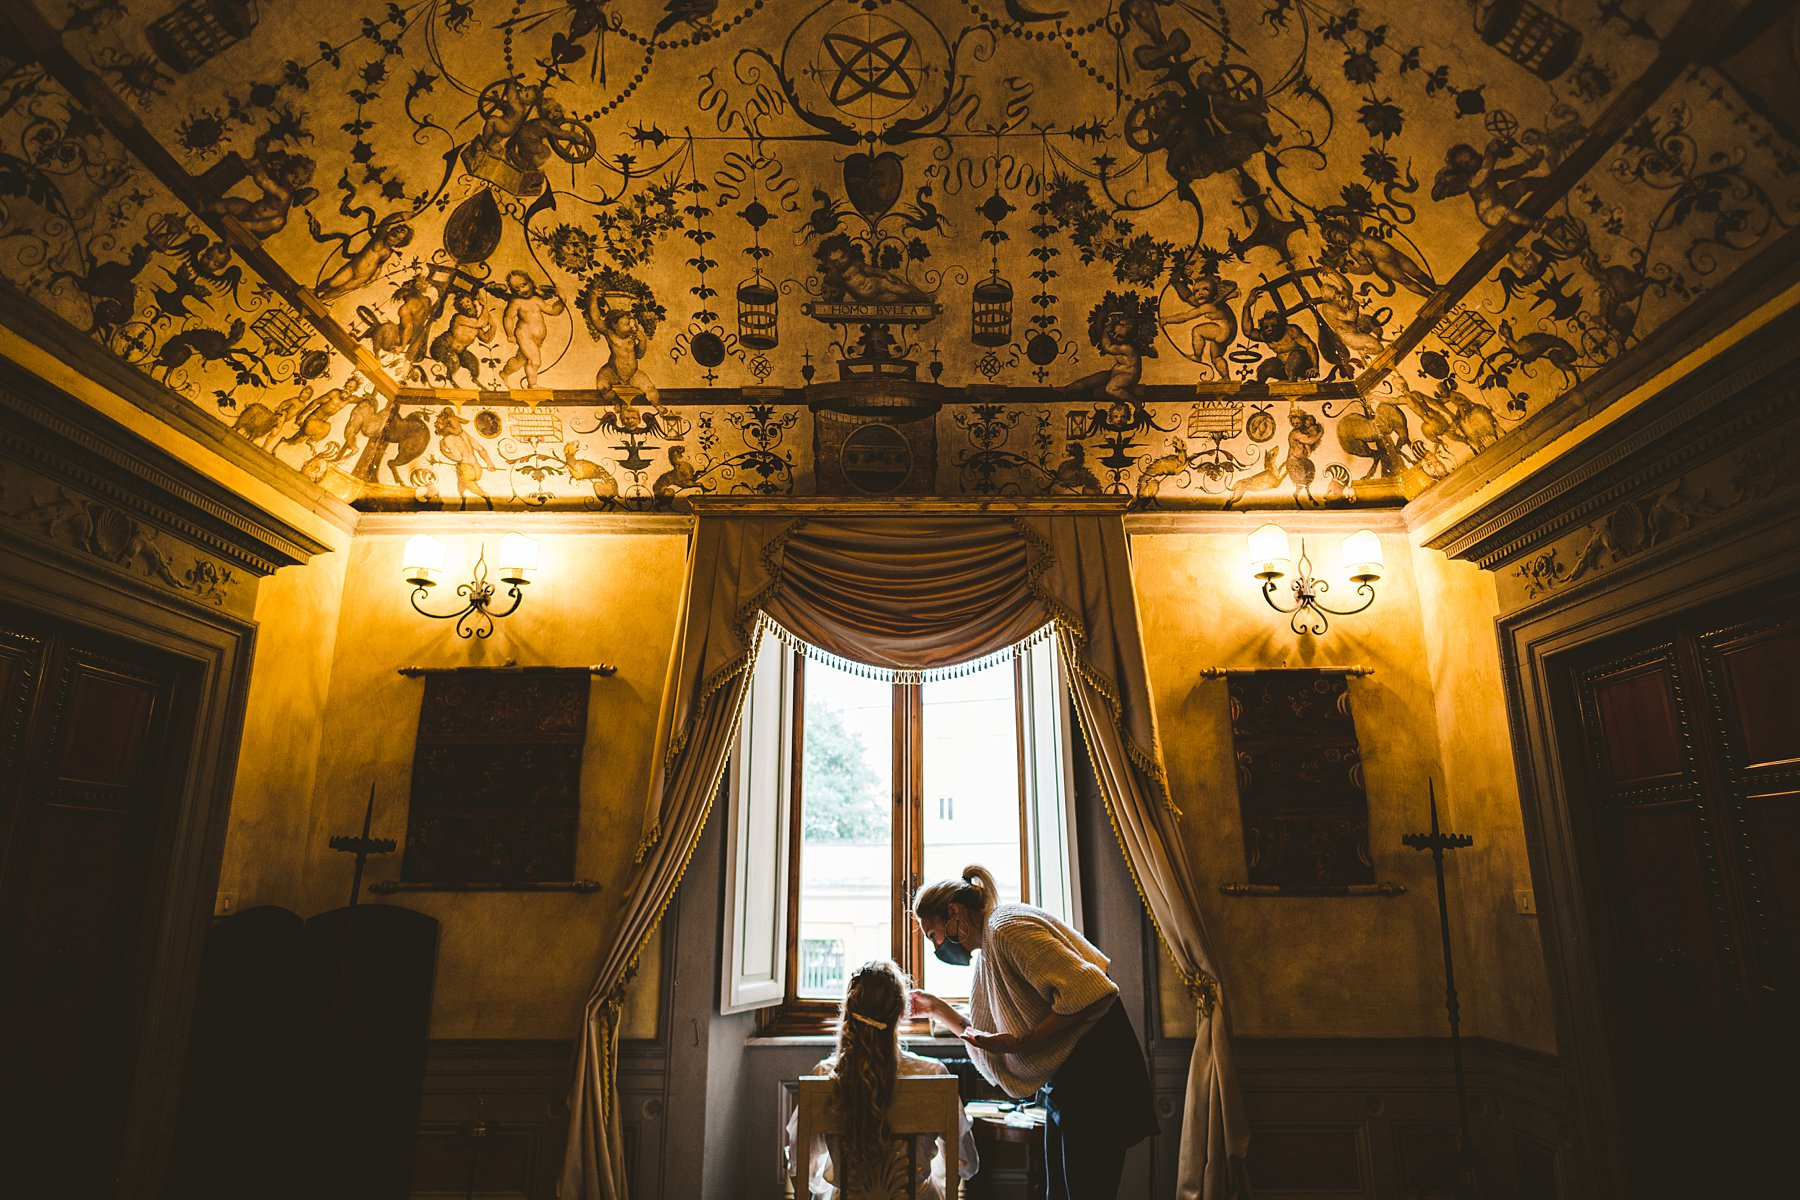 Bride getting ready at Palazzo Coli Bizzarrini in the heart of Siena, an historic residence whose architecture and incredible frescoes take you back to the Renaissance